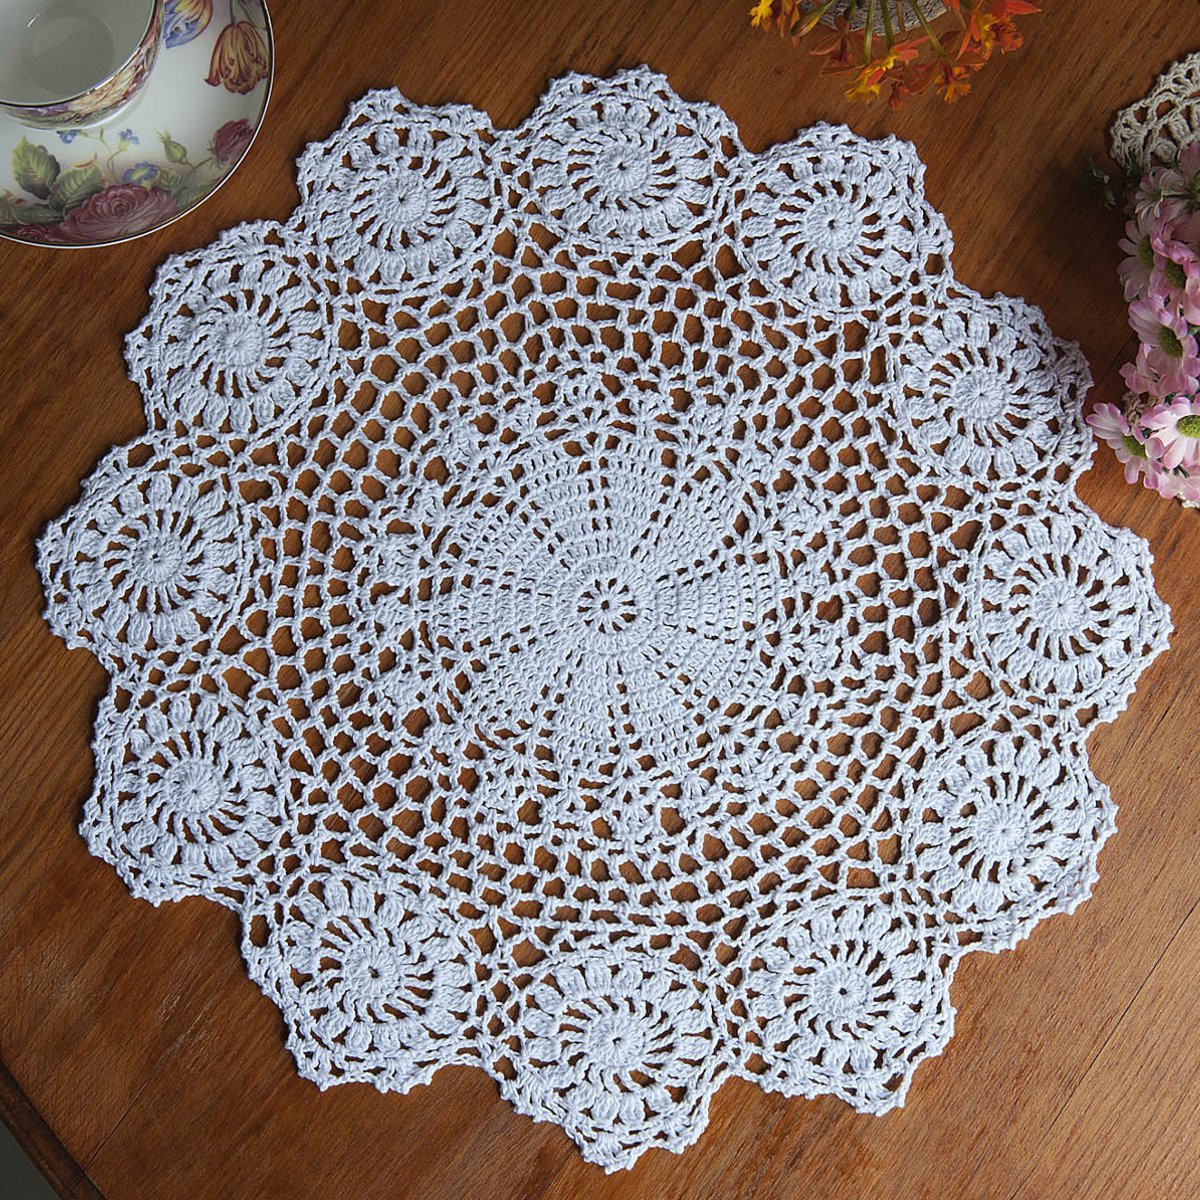 Embroidery Lace Square Doilies Coasts Traditional Home Table Mat Decor L